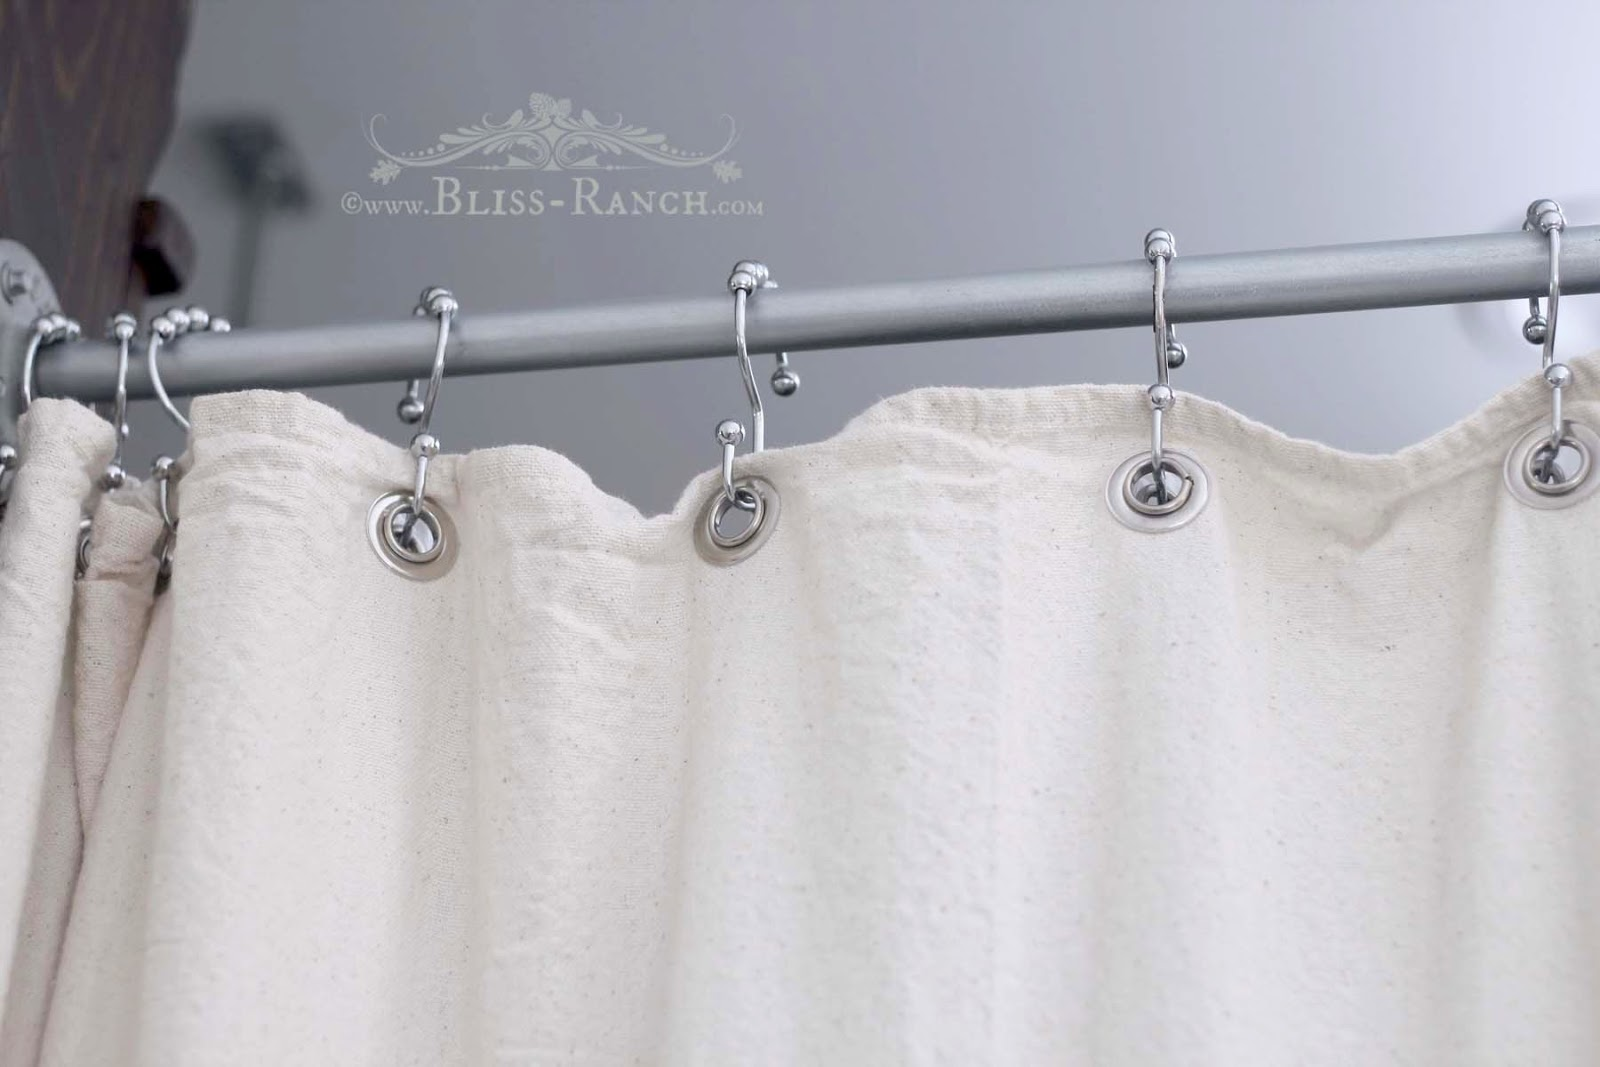 Bliss Ranch Hanging Laundry Hampers